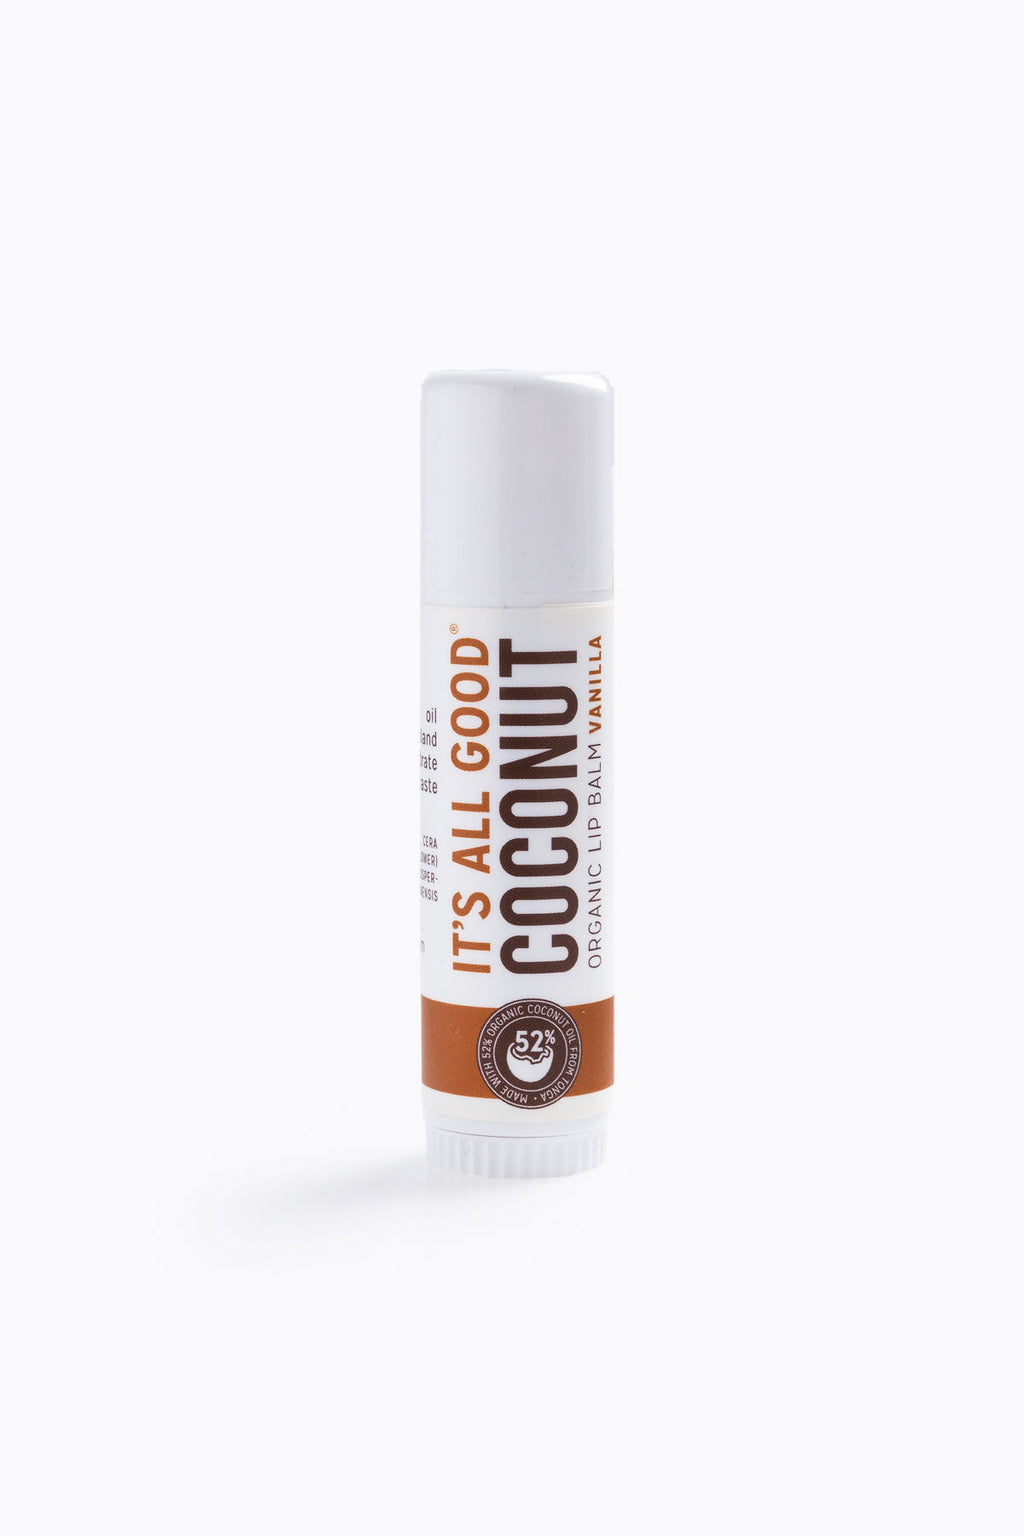 It's All Good: Coconut Lip Balm in Vanilla